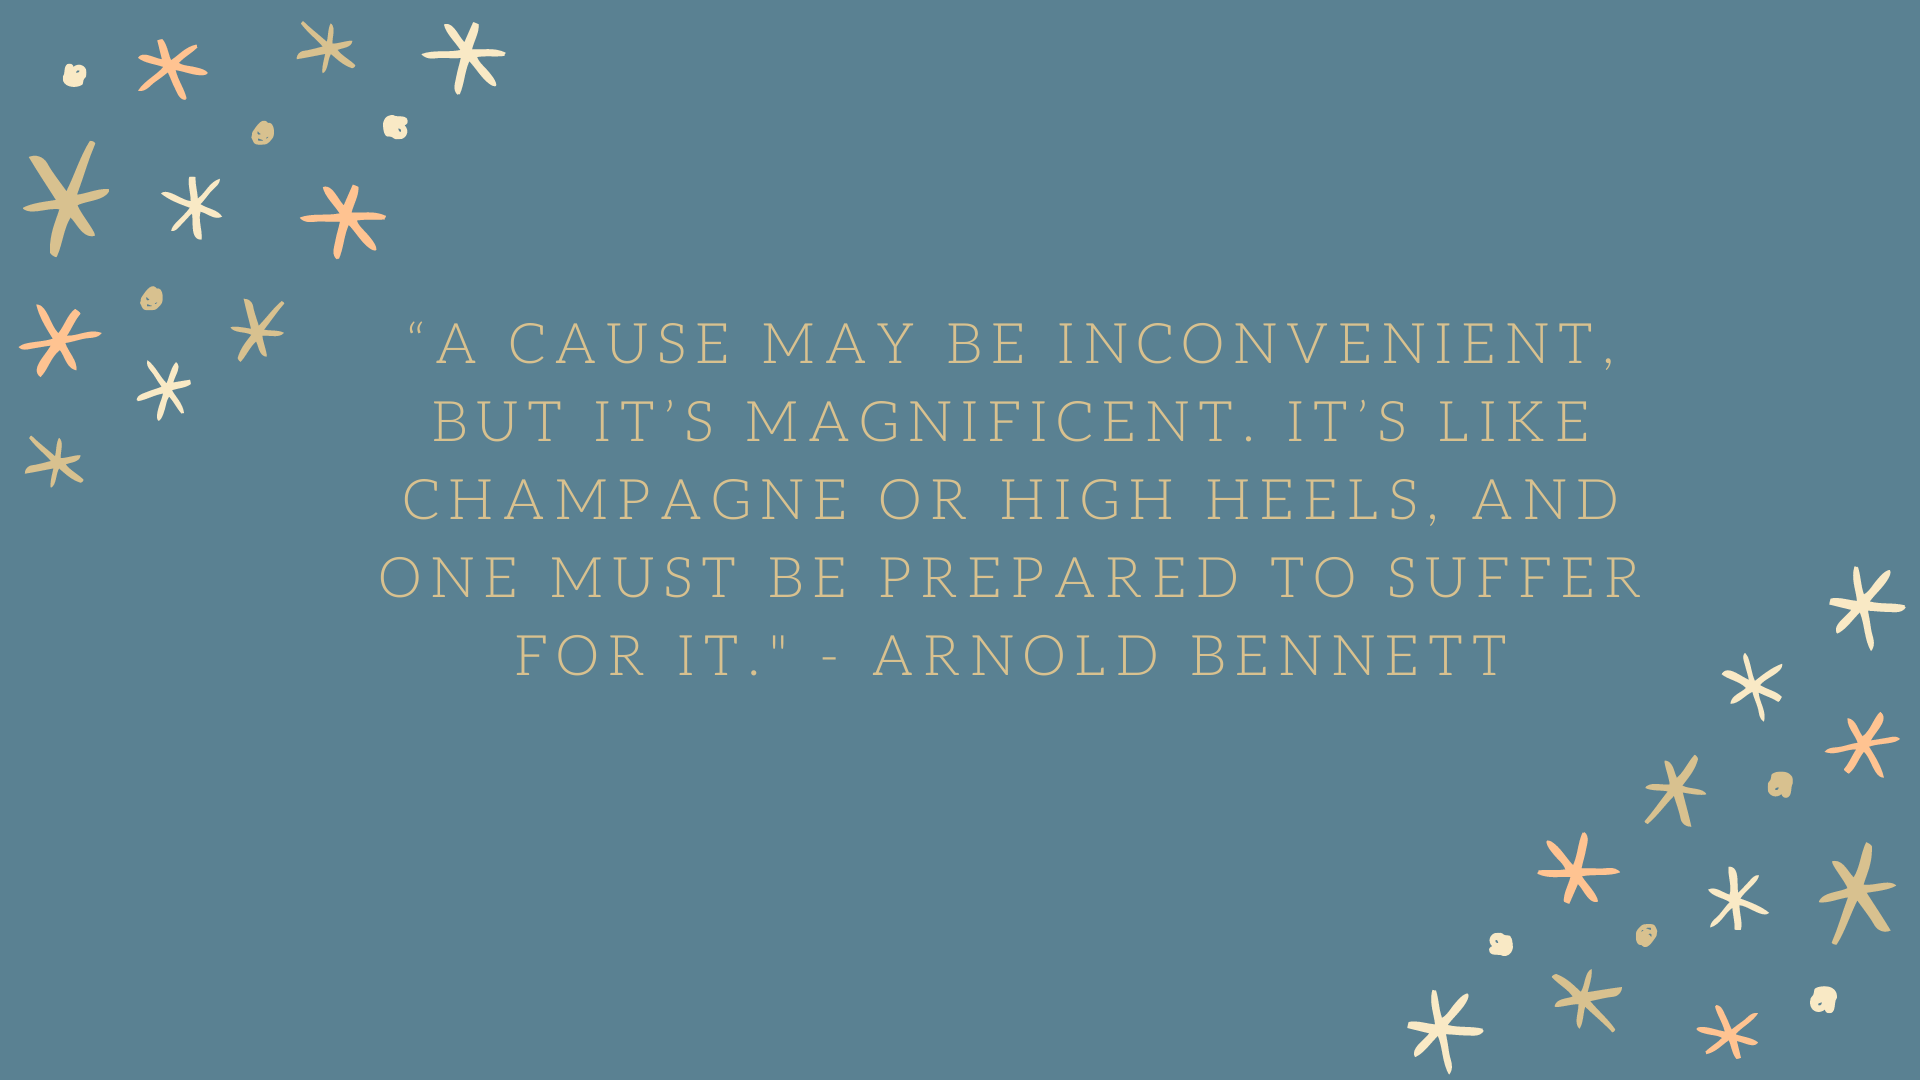 """A cause may be inconvenient, but it's magnificent. It's like champagne or high heels, and one must be prepared to suffer for it."" - Arnold Bennett"